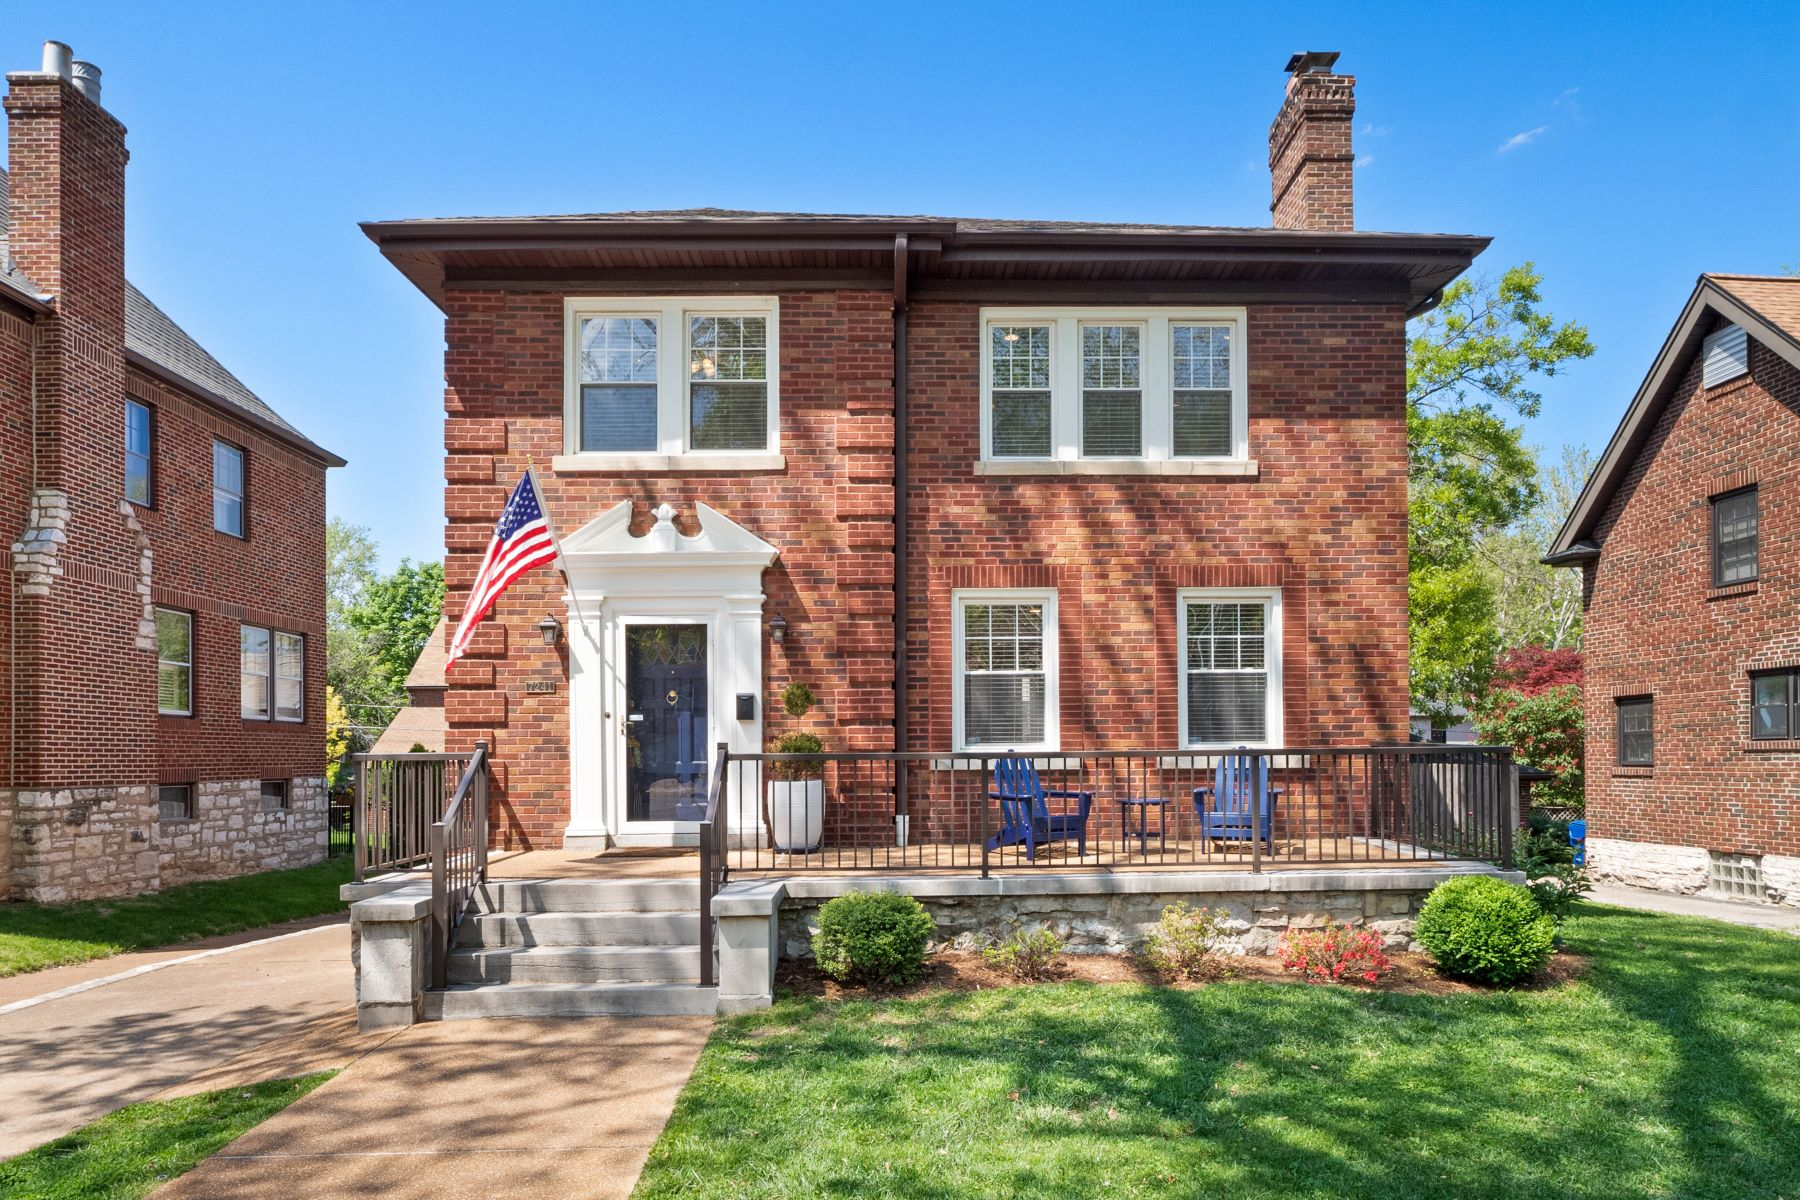 Single Family Homes for Active at Classic and Sophisticated 7241 Princeton Avenue University City, Missouri 63130 United States